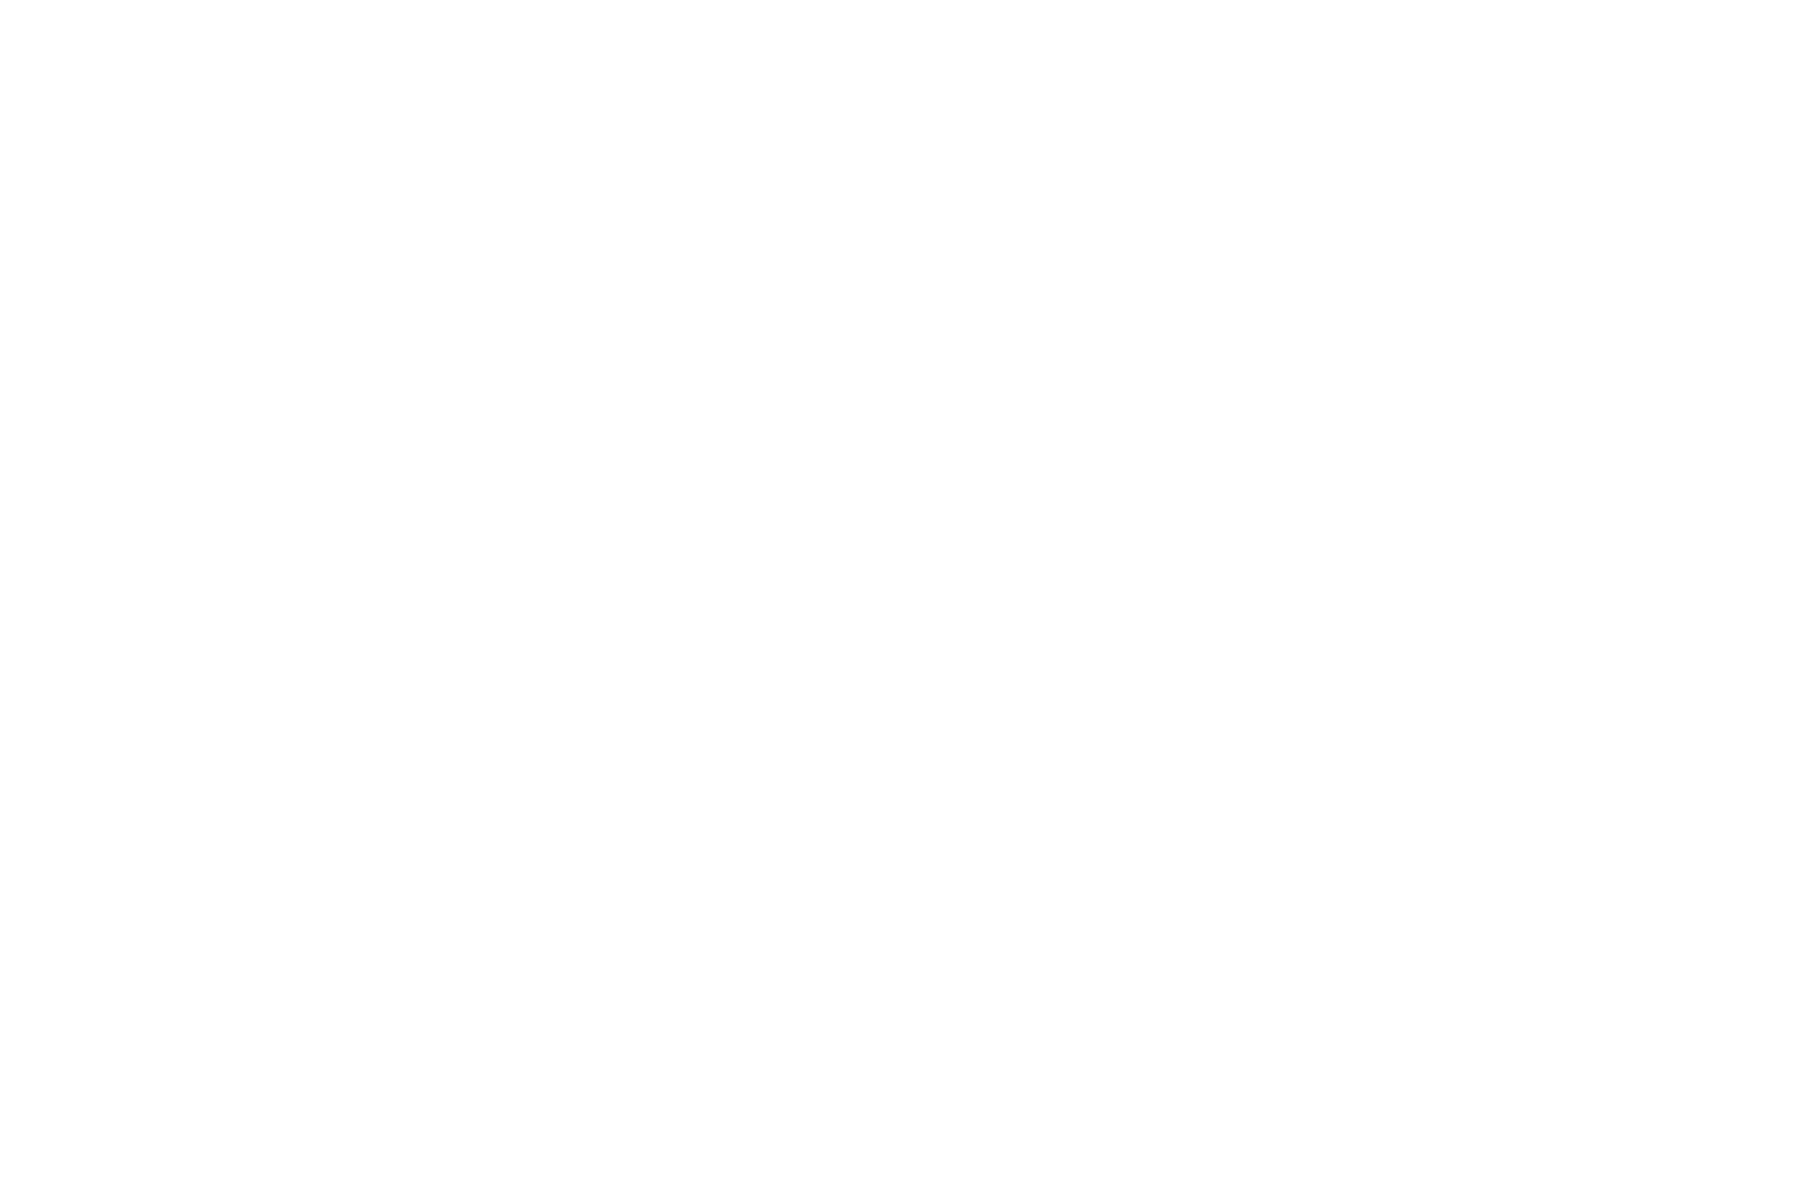 Our Mission: Your Beauty